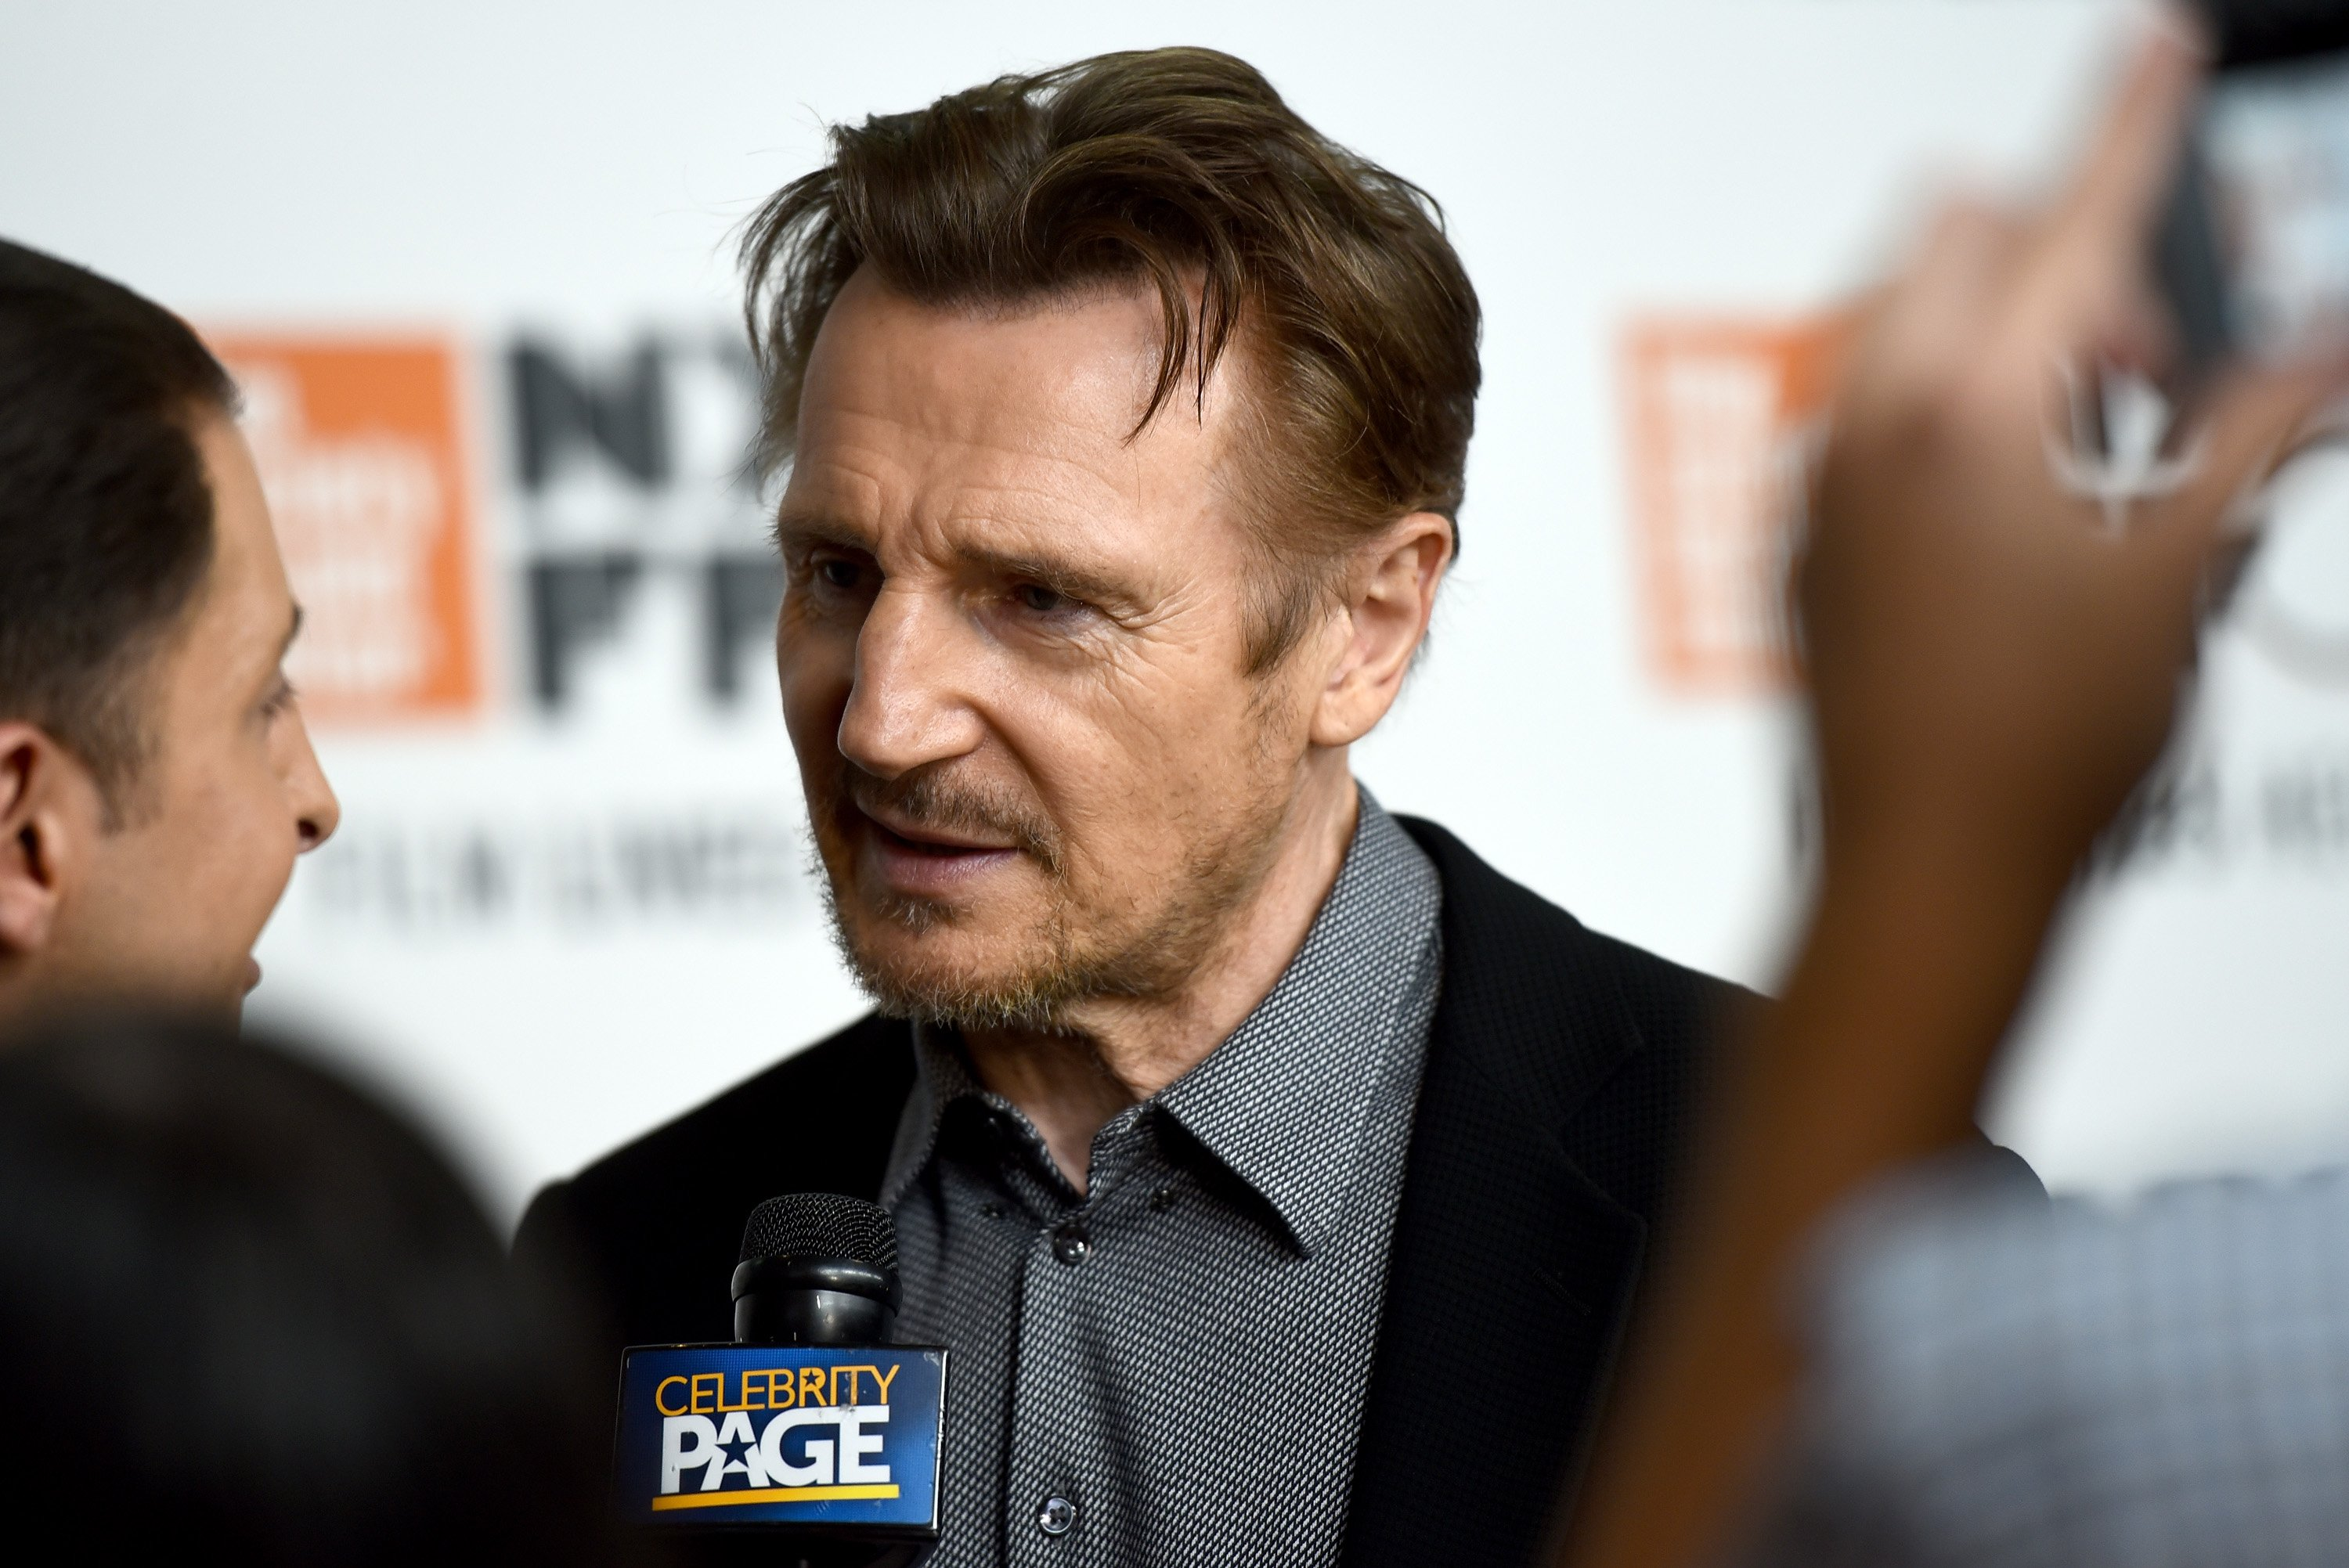 """Liam Neeson attends the Netflix's """"The Ballad of Buster Scruggs"""" NYFF Red Carpet Premiere in 2018. 